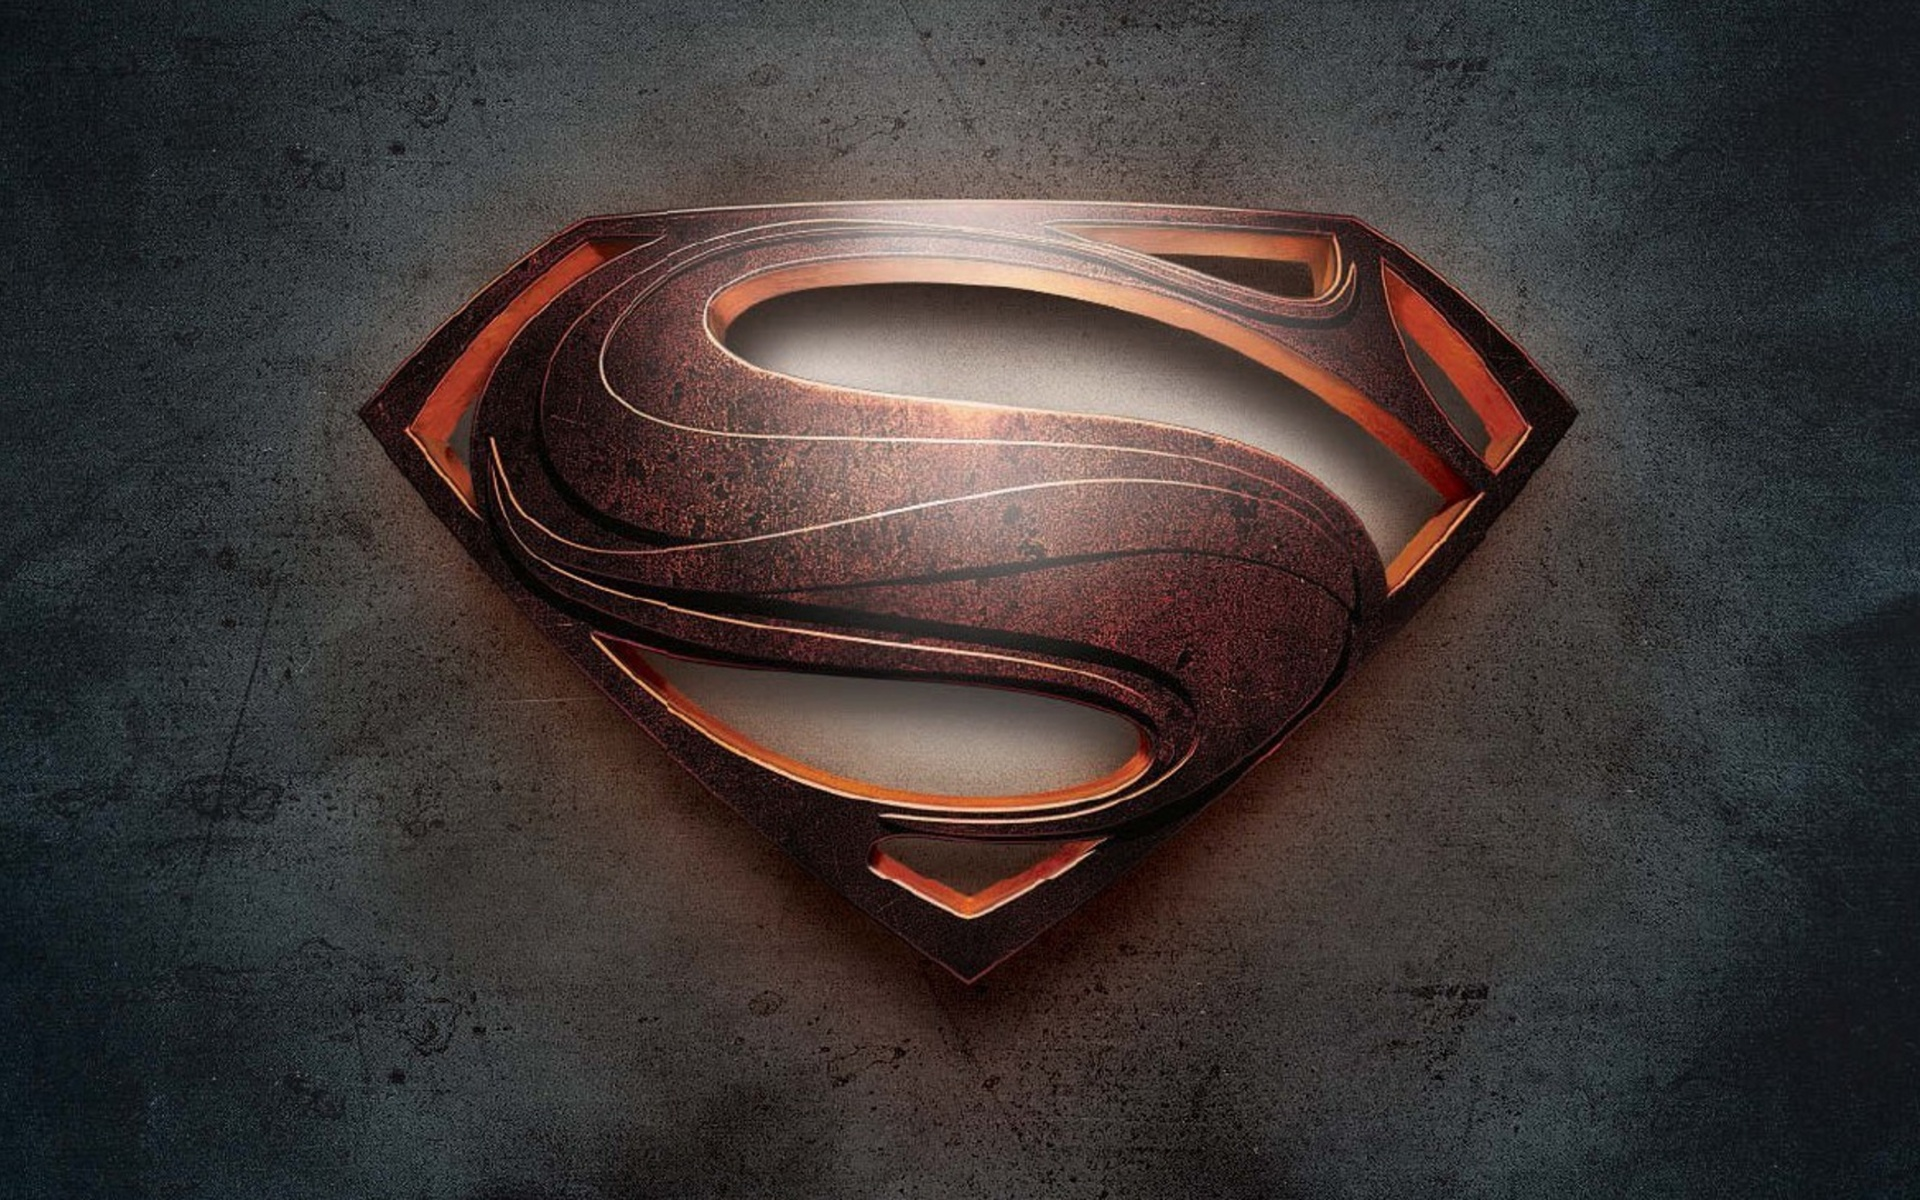 1920x1200 man of steel 1080p resolution hd 4k wallpapers, images